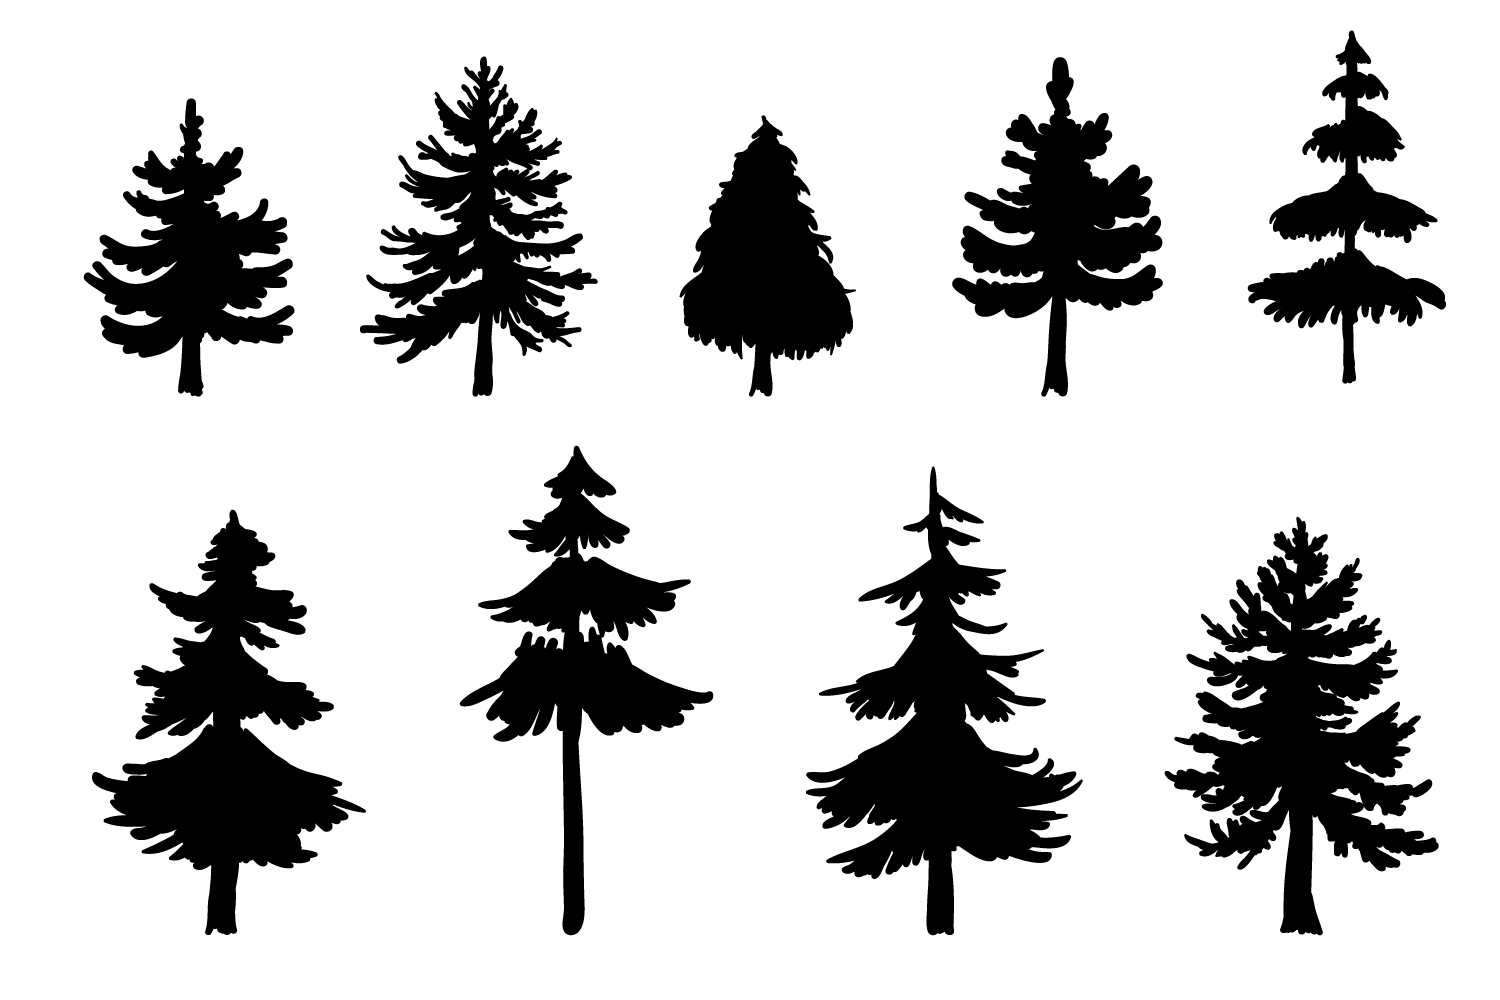 9 Vector Pine Tree Silhouette Illustrations example image 2